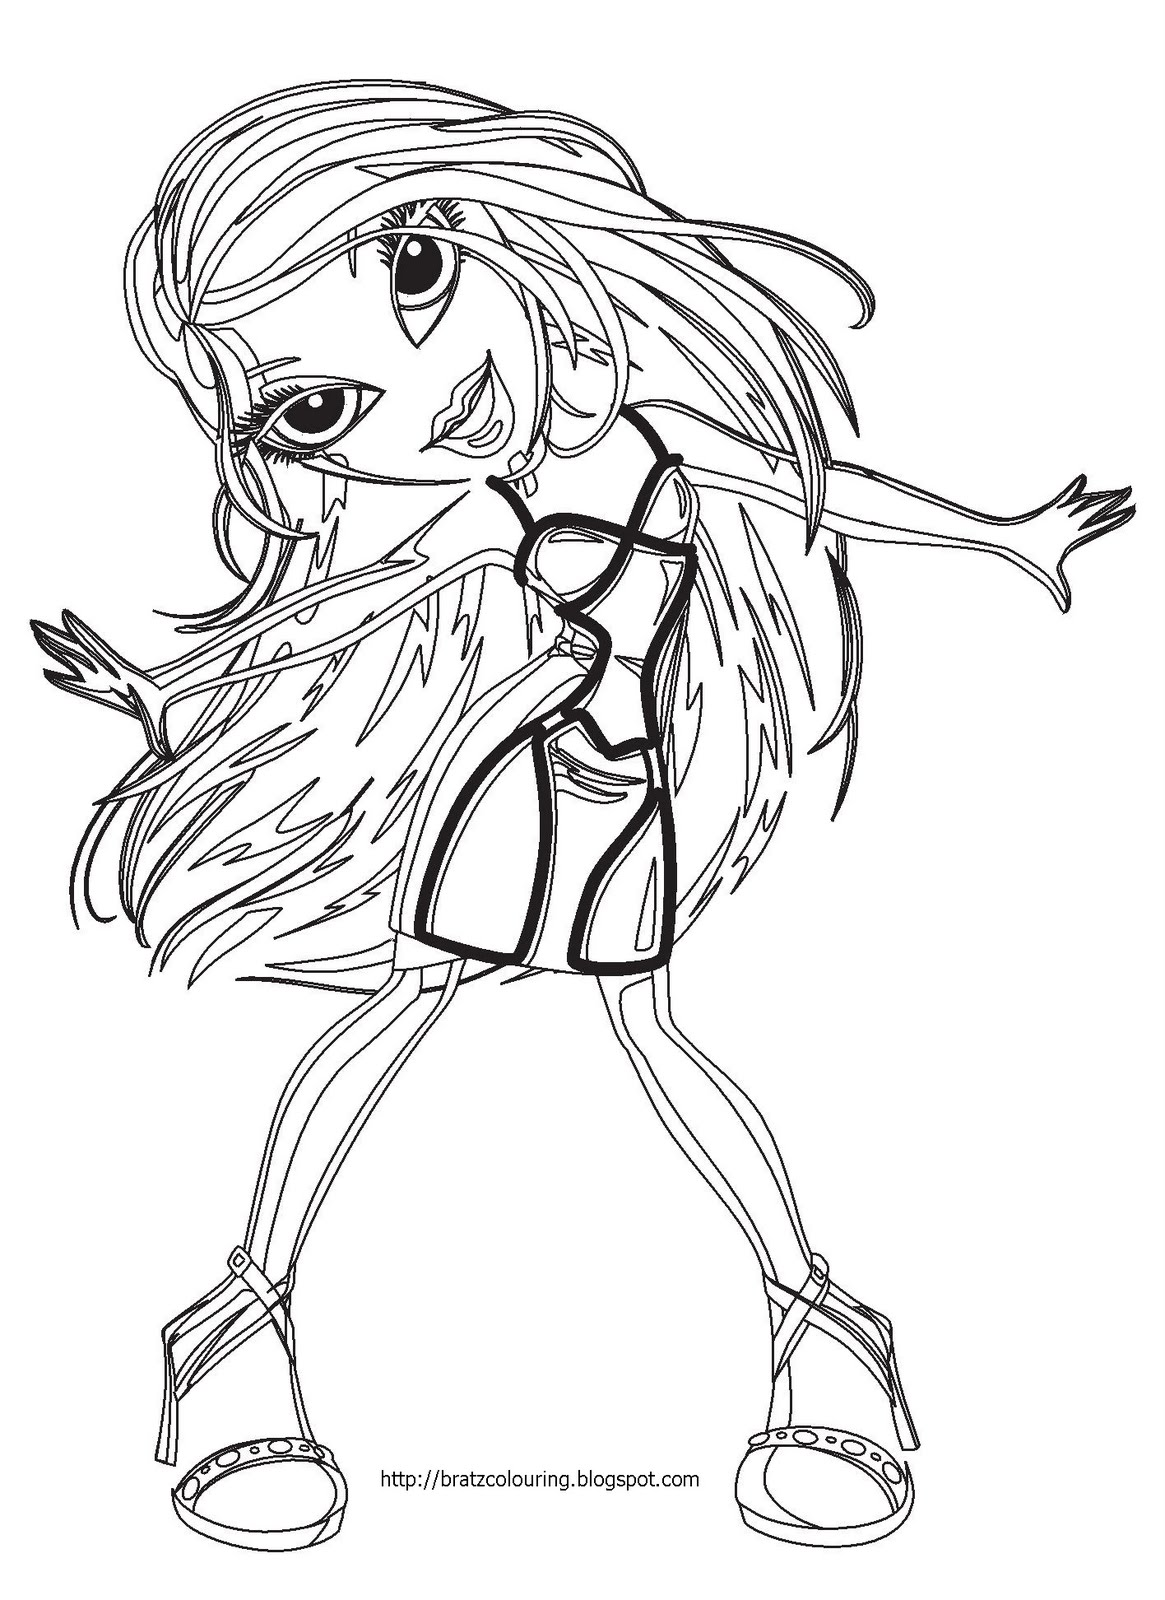 bratz coloring pages free print and color bratz coloring pages